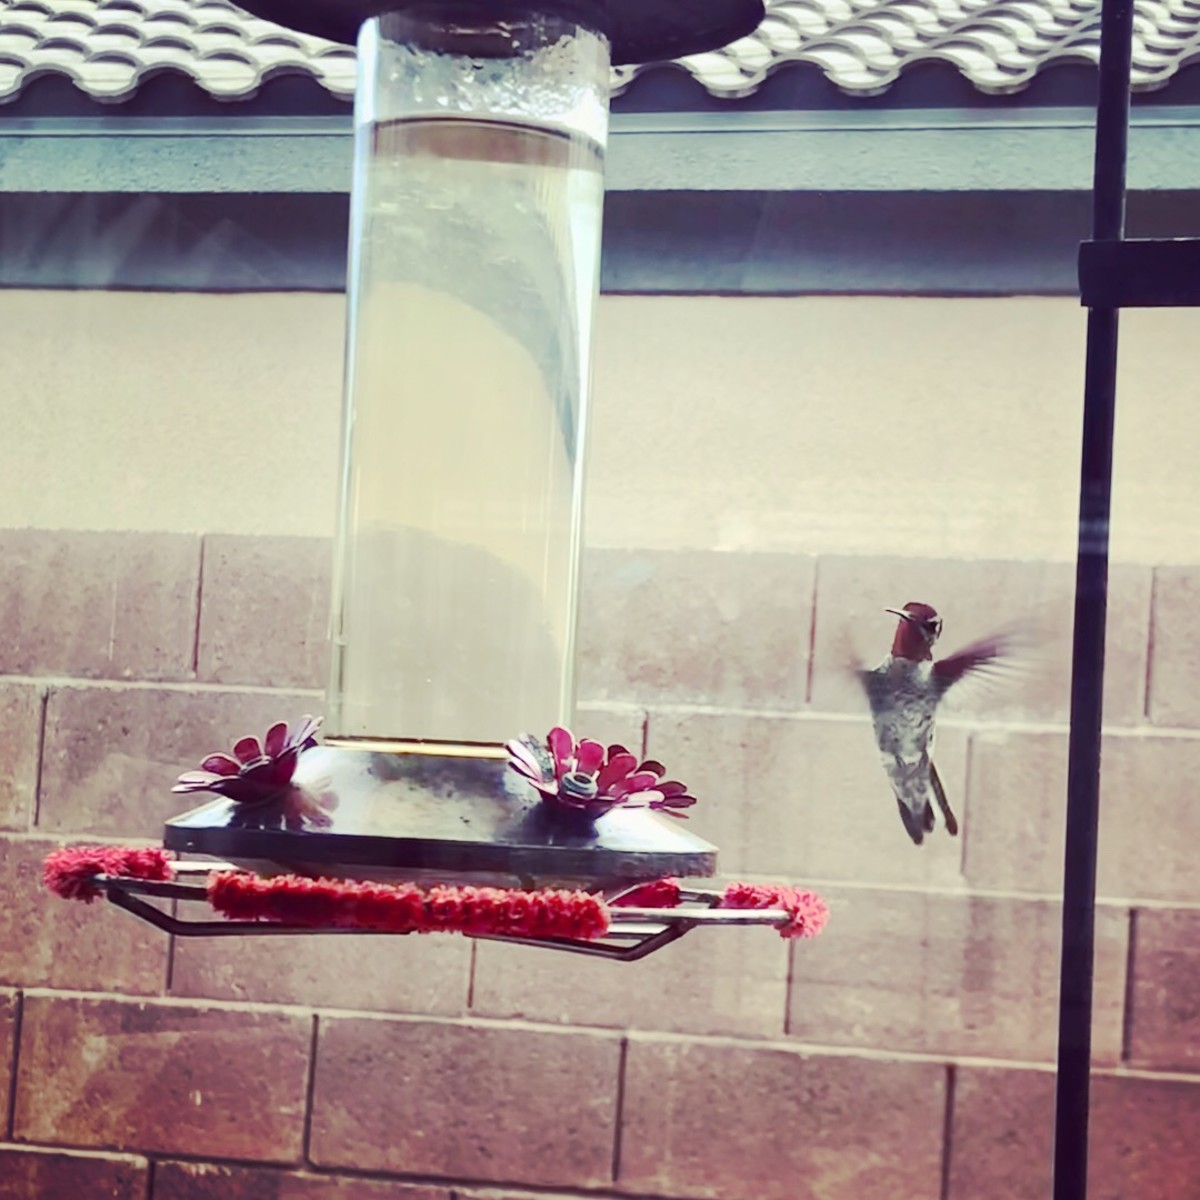 A hummingbird flying away after feeding.